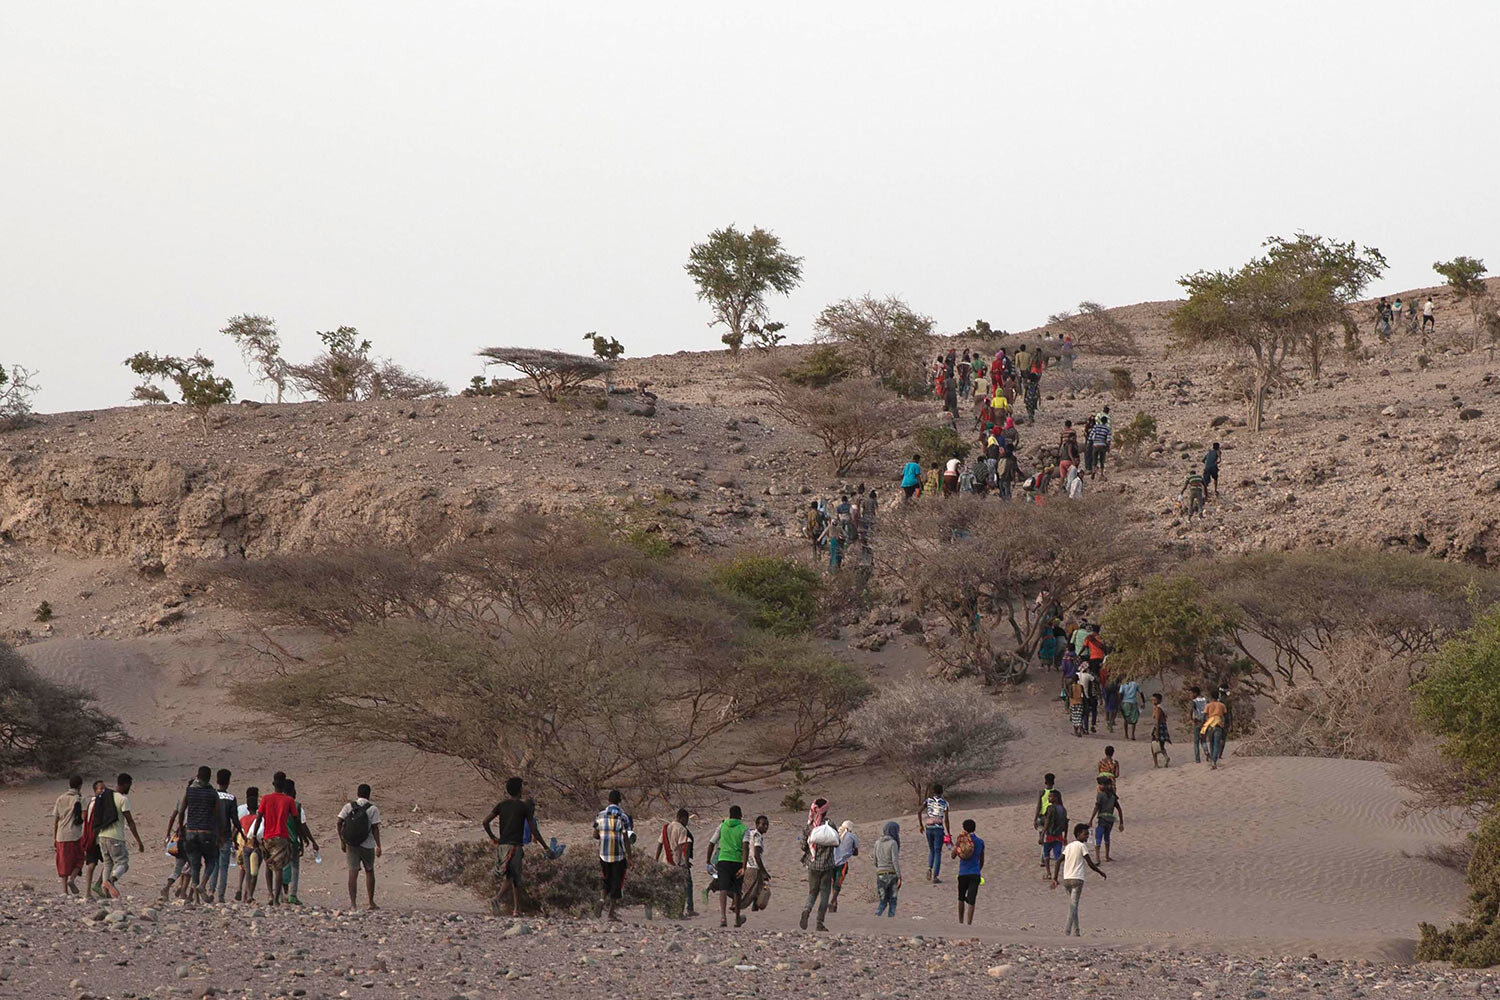 Ethiopian migrants are led by a smuggler to a disembarking point on the uninhabited coast outside the town of Obock, Djibouti, on the shore closest to Yemen. (AP Photo/Nariman El-Mofty)